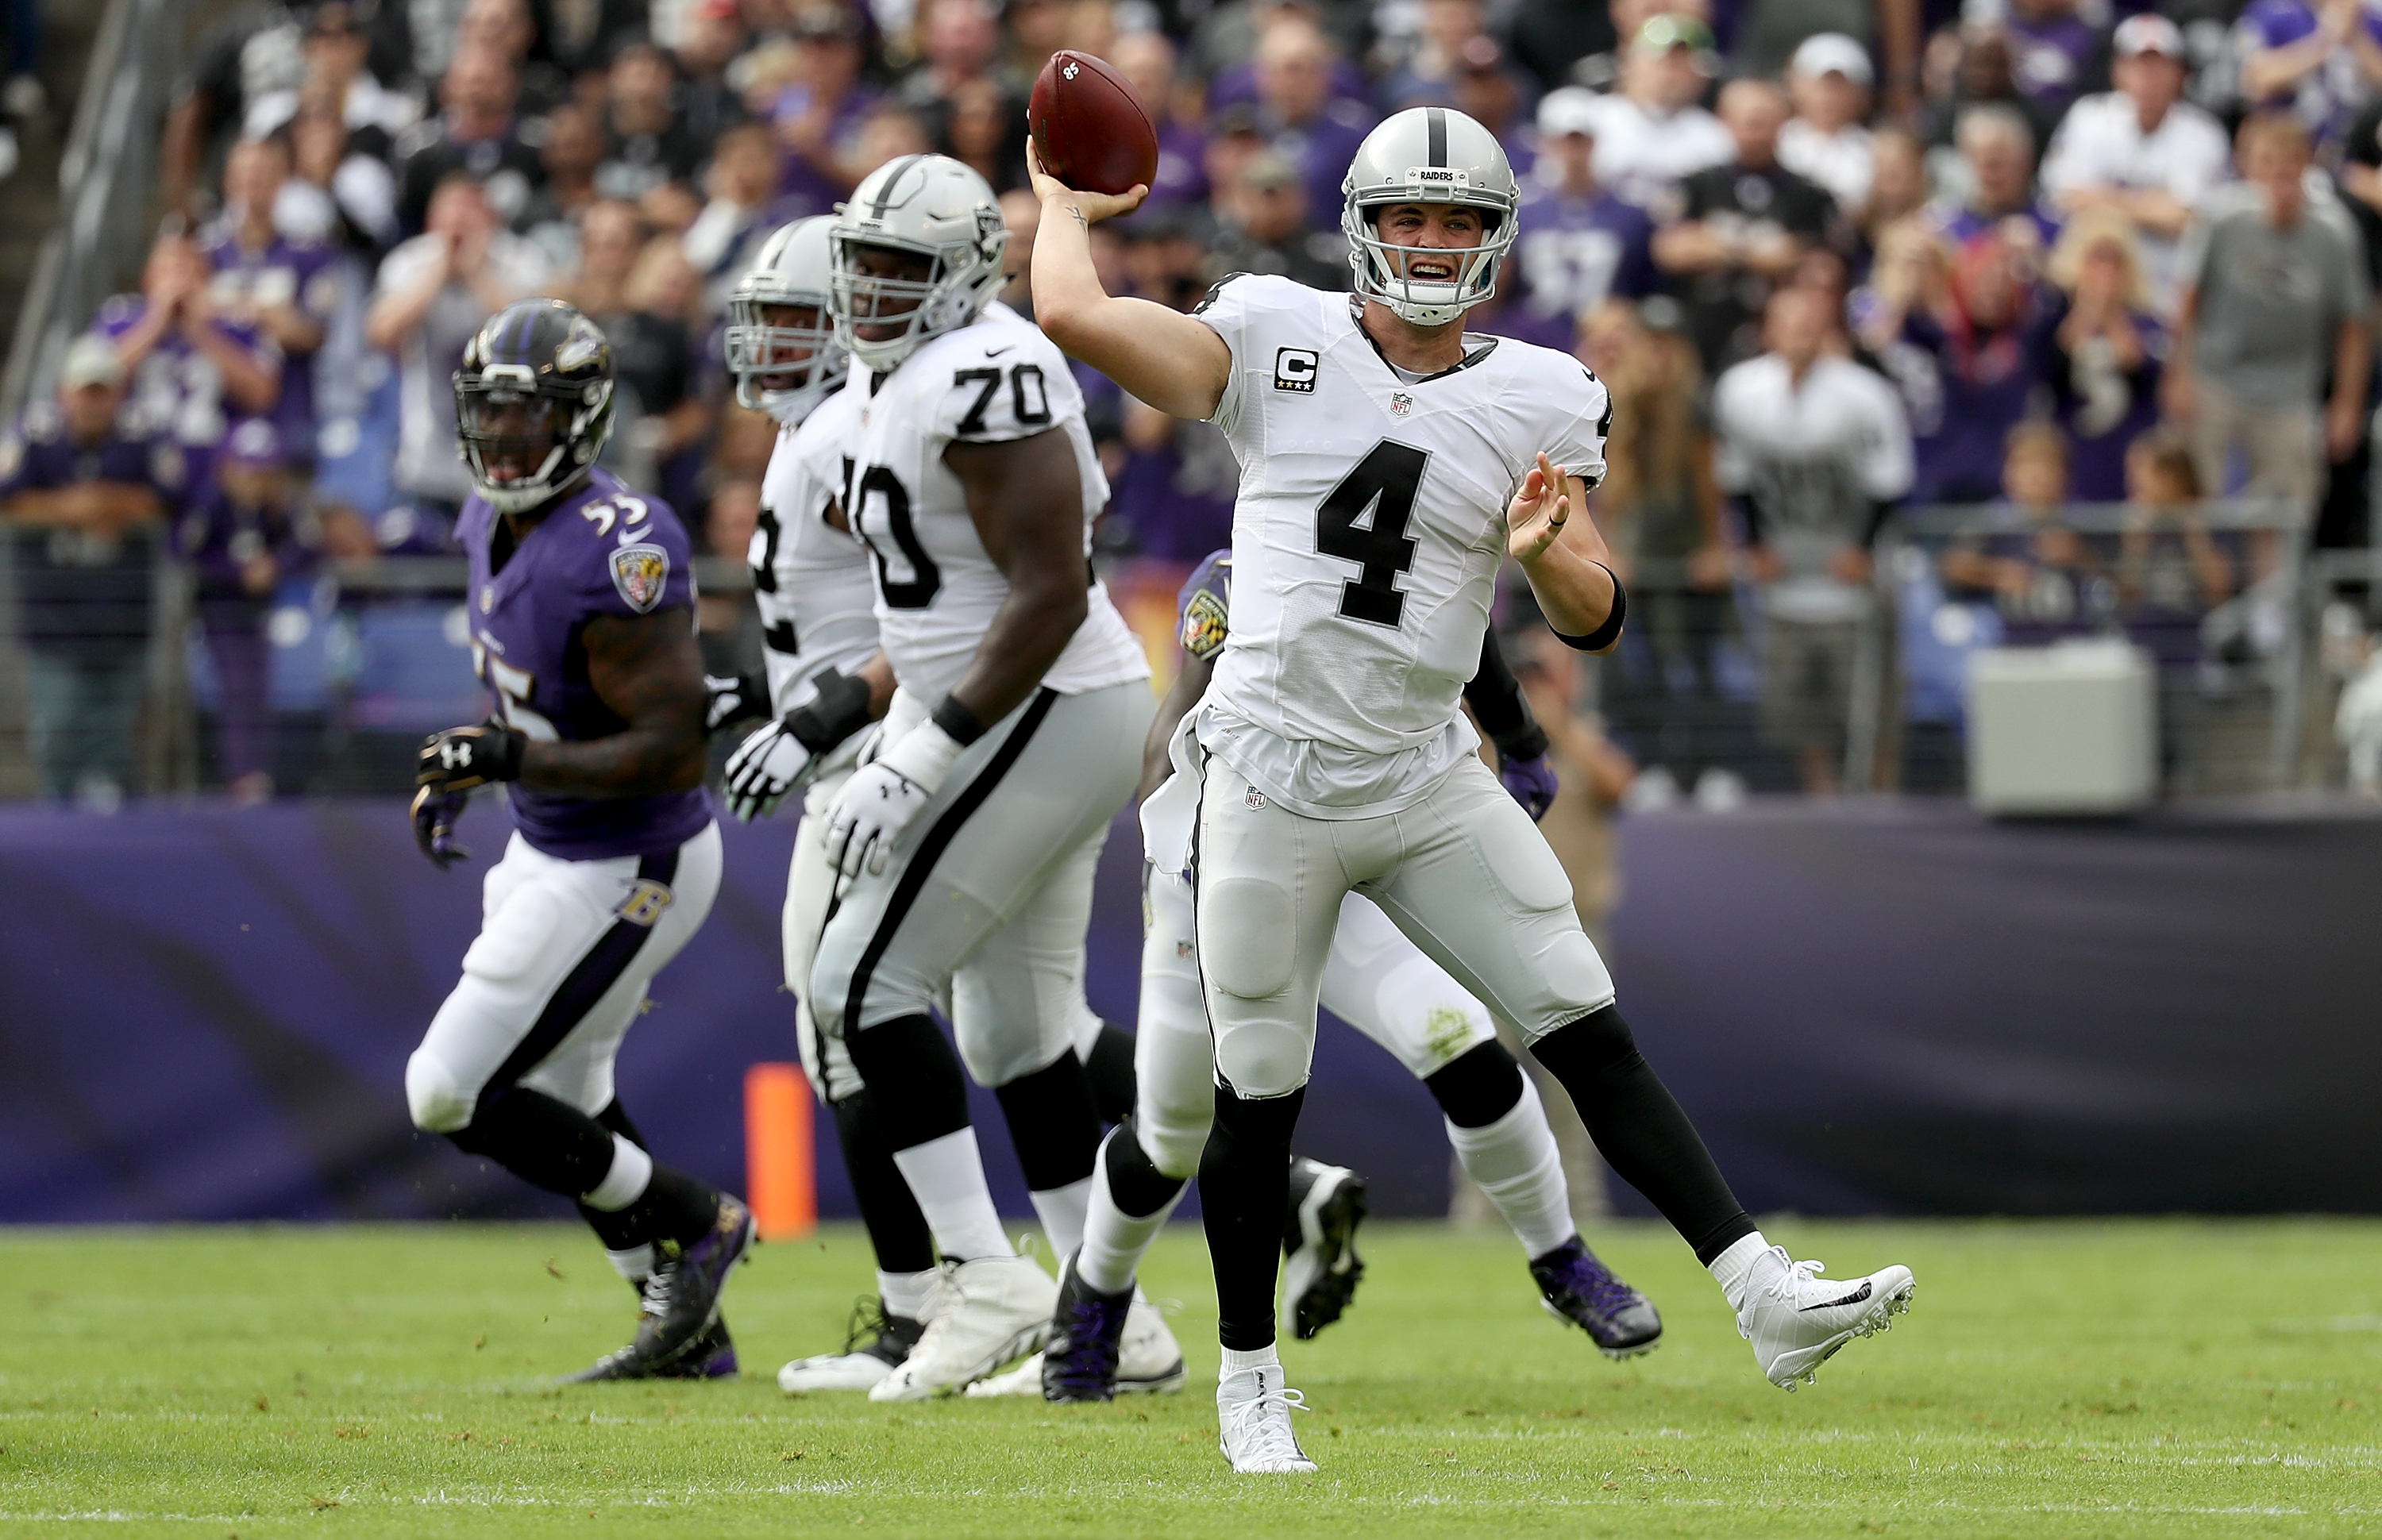 Raiders play clutch, Chargers collapse in early season